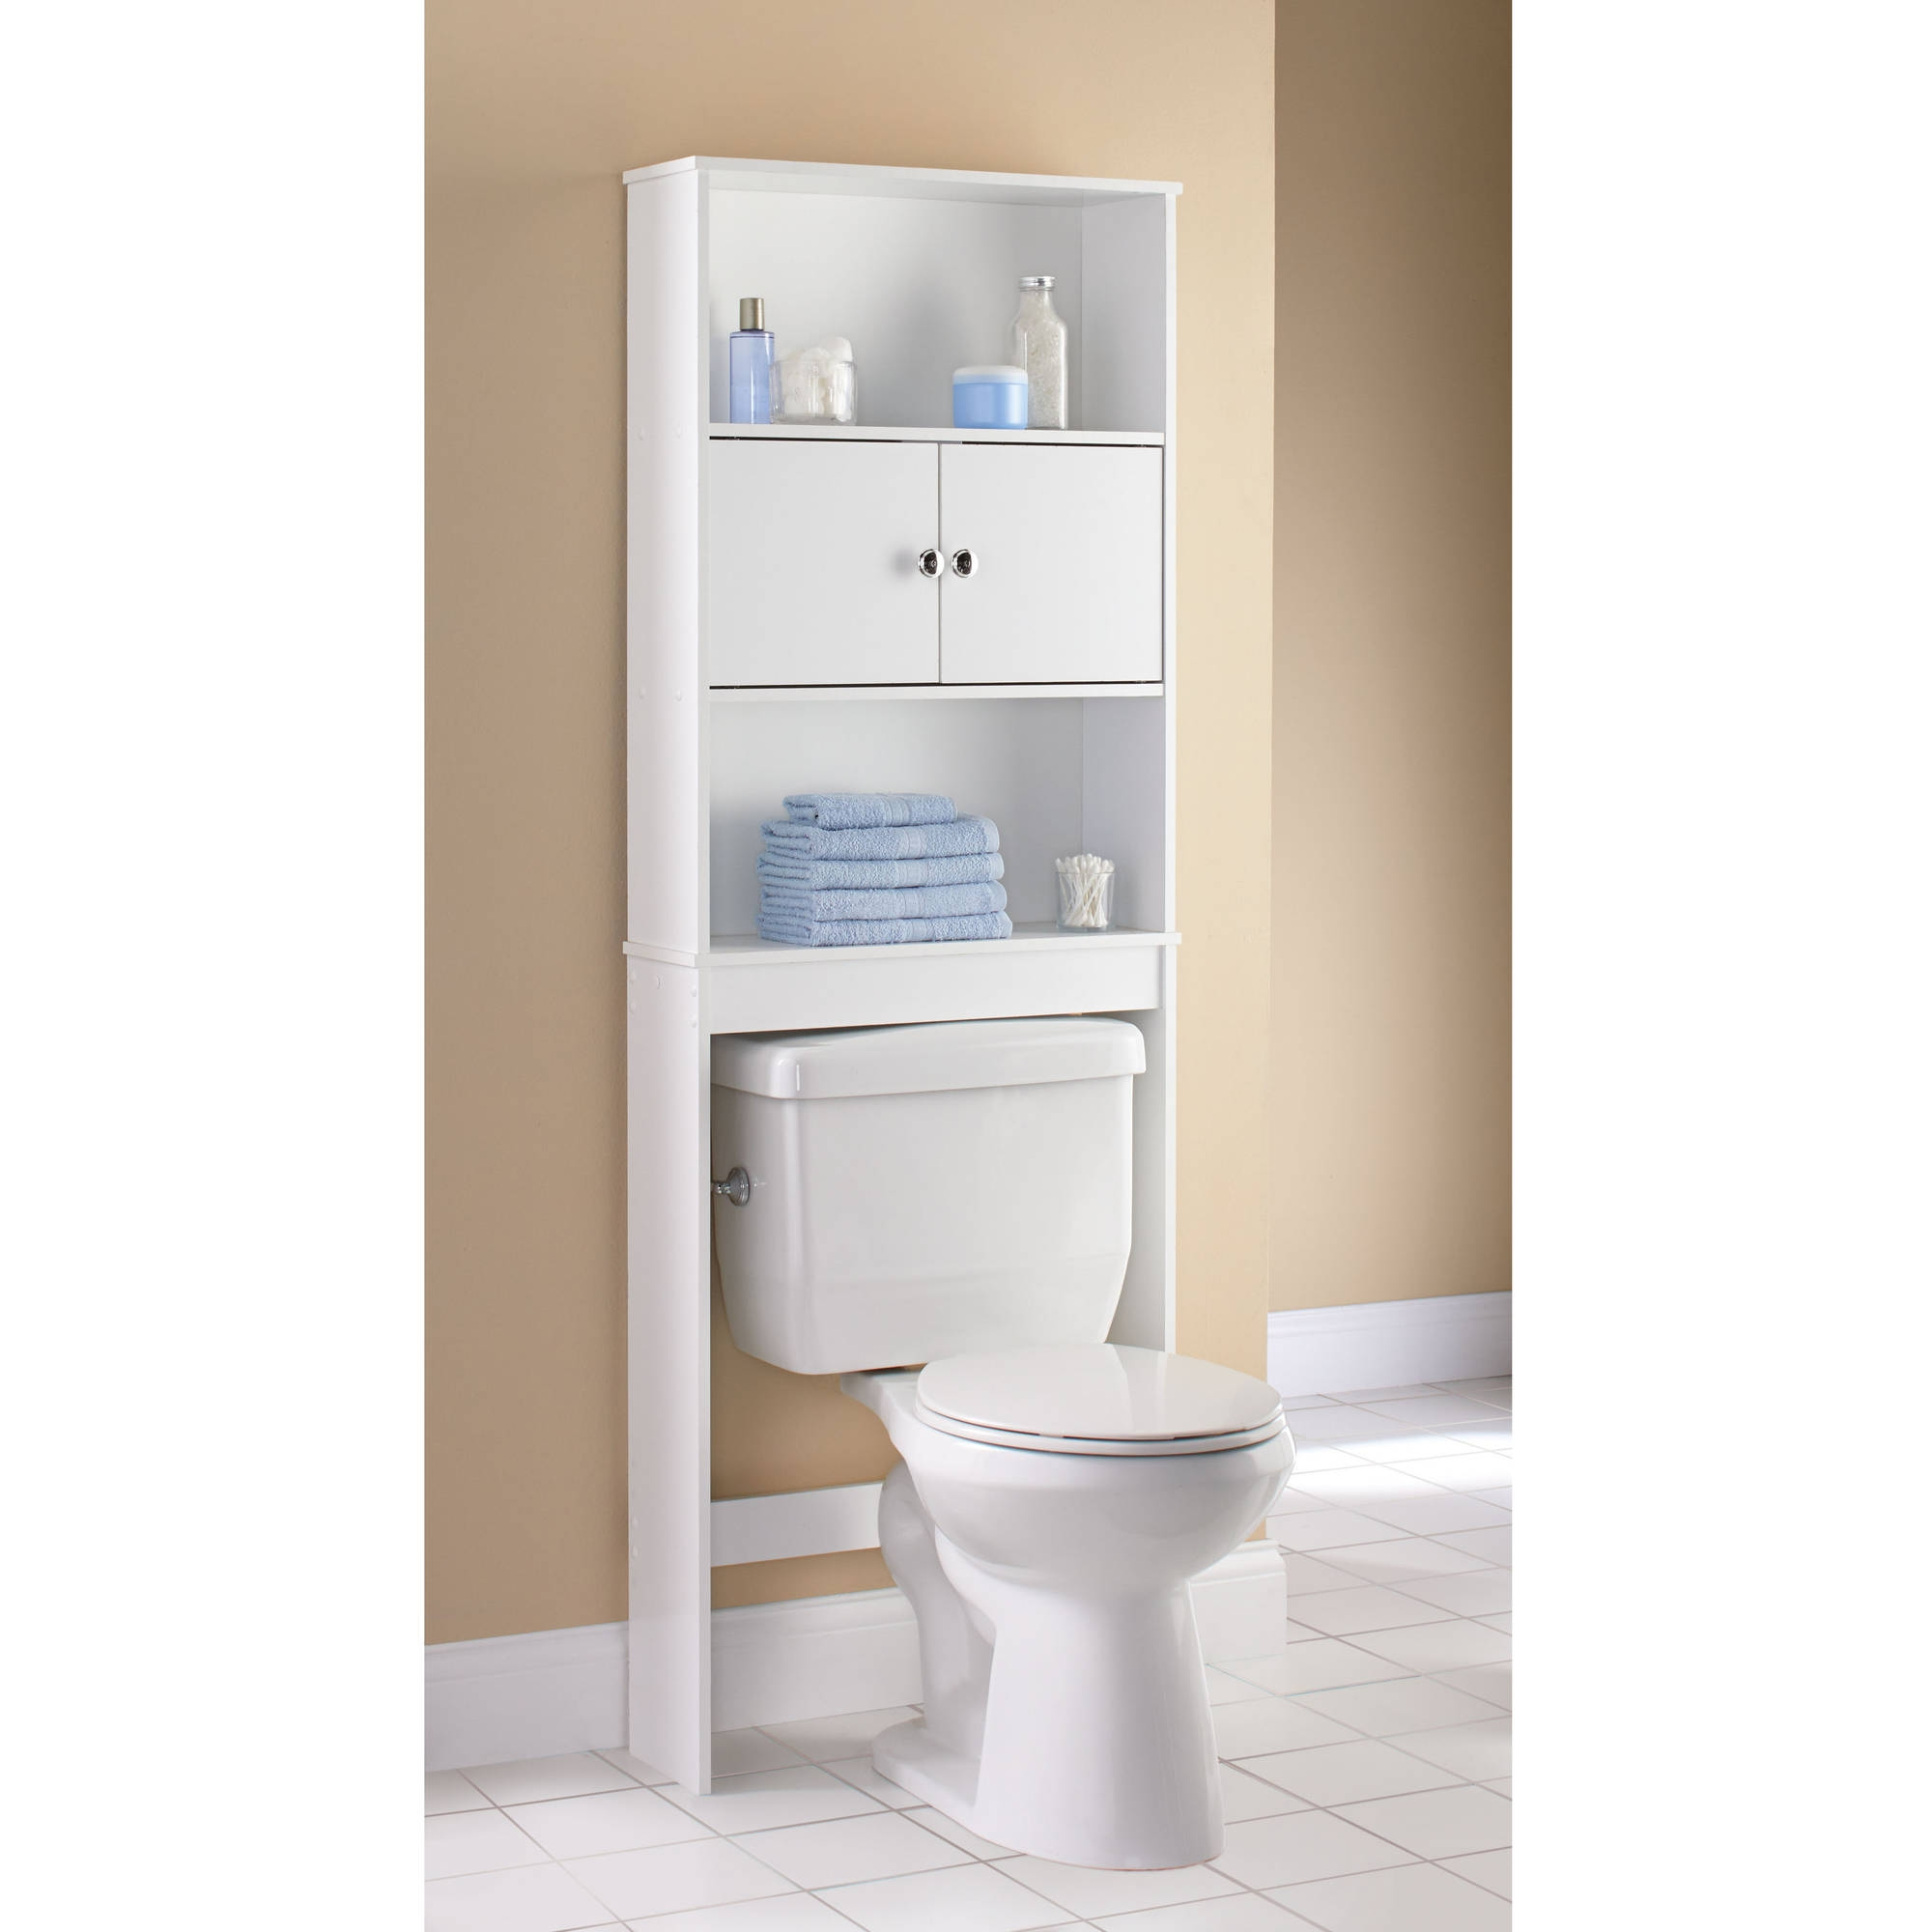 Permalink to Space Saver Bathroom Cabinet